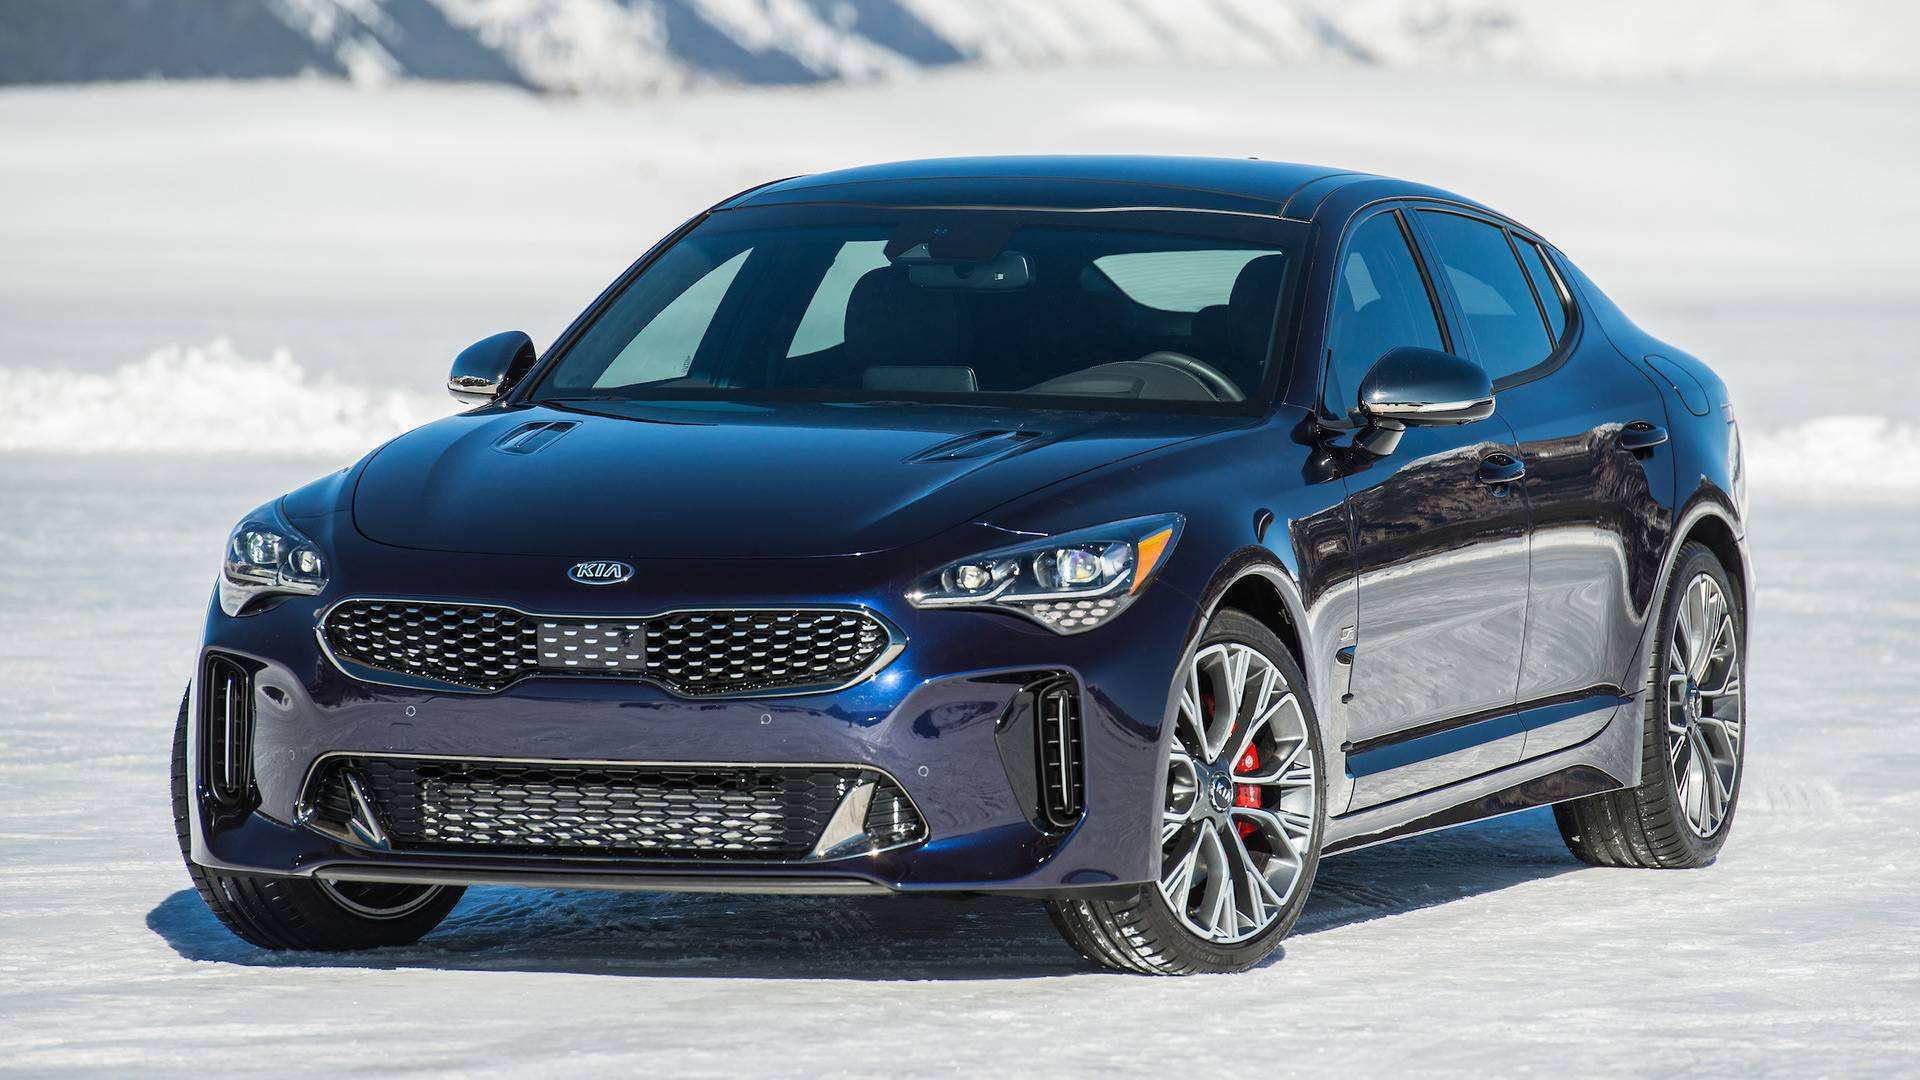 48 Gallery of 2019 Kia Stinger Gt Specs Redesign by 2019 Kia Stinger Gt Specs